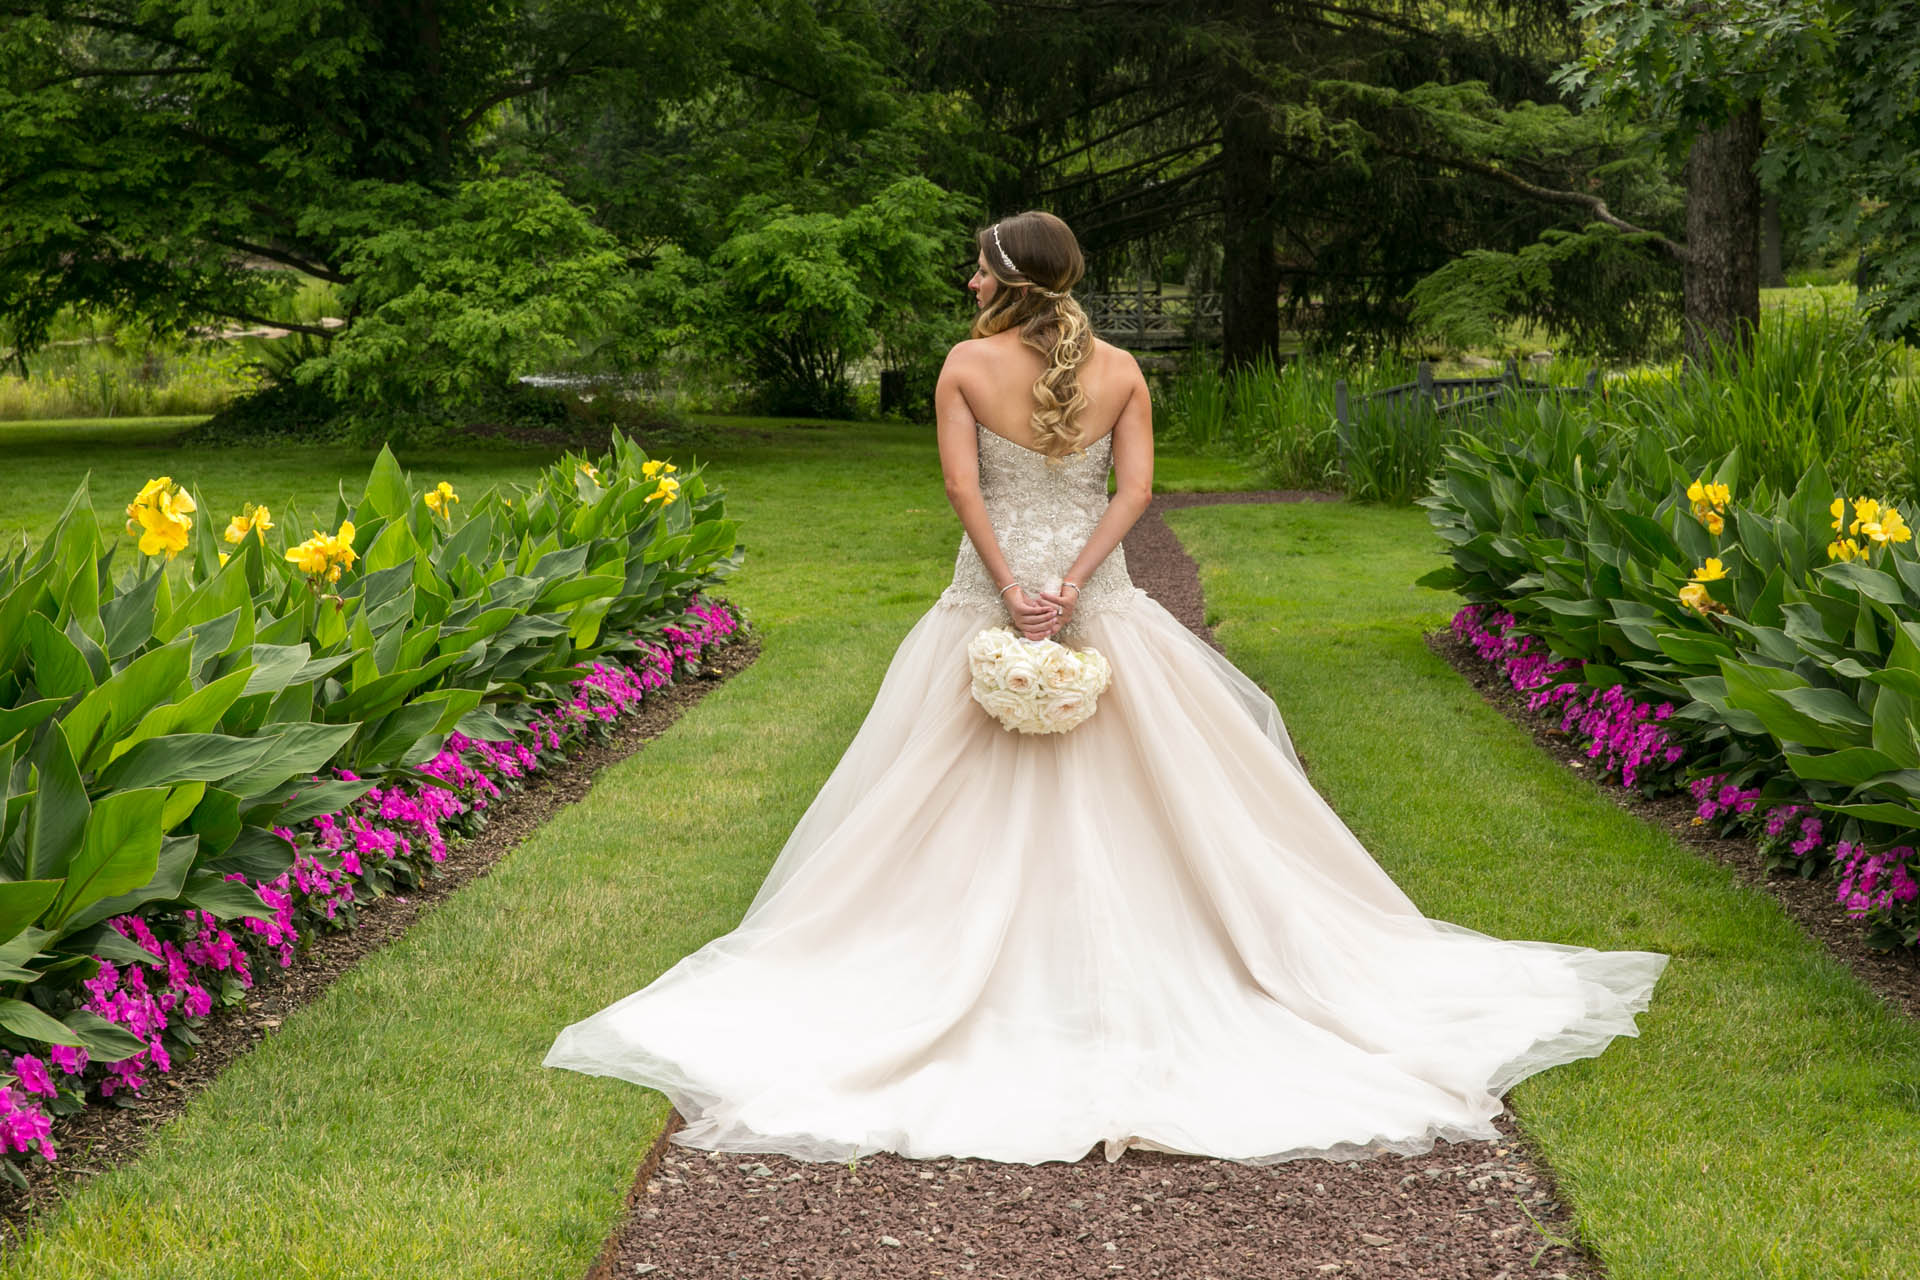 bride nj garden photos